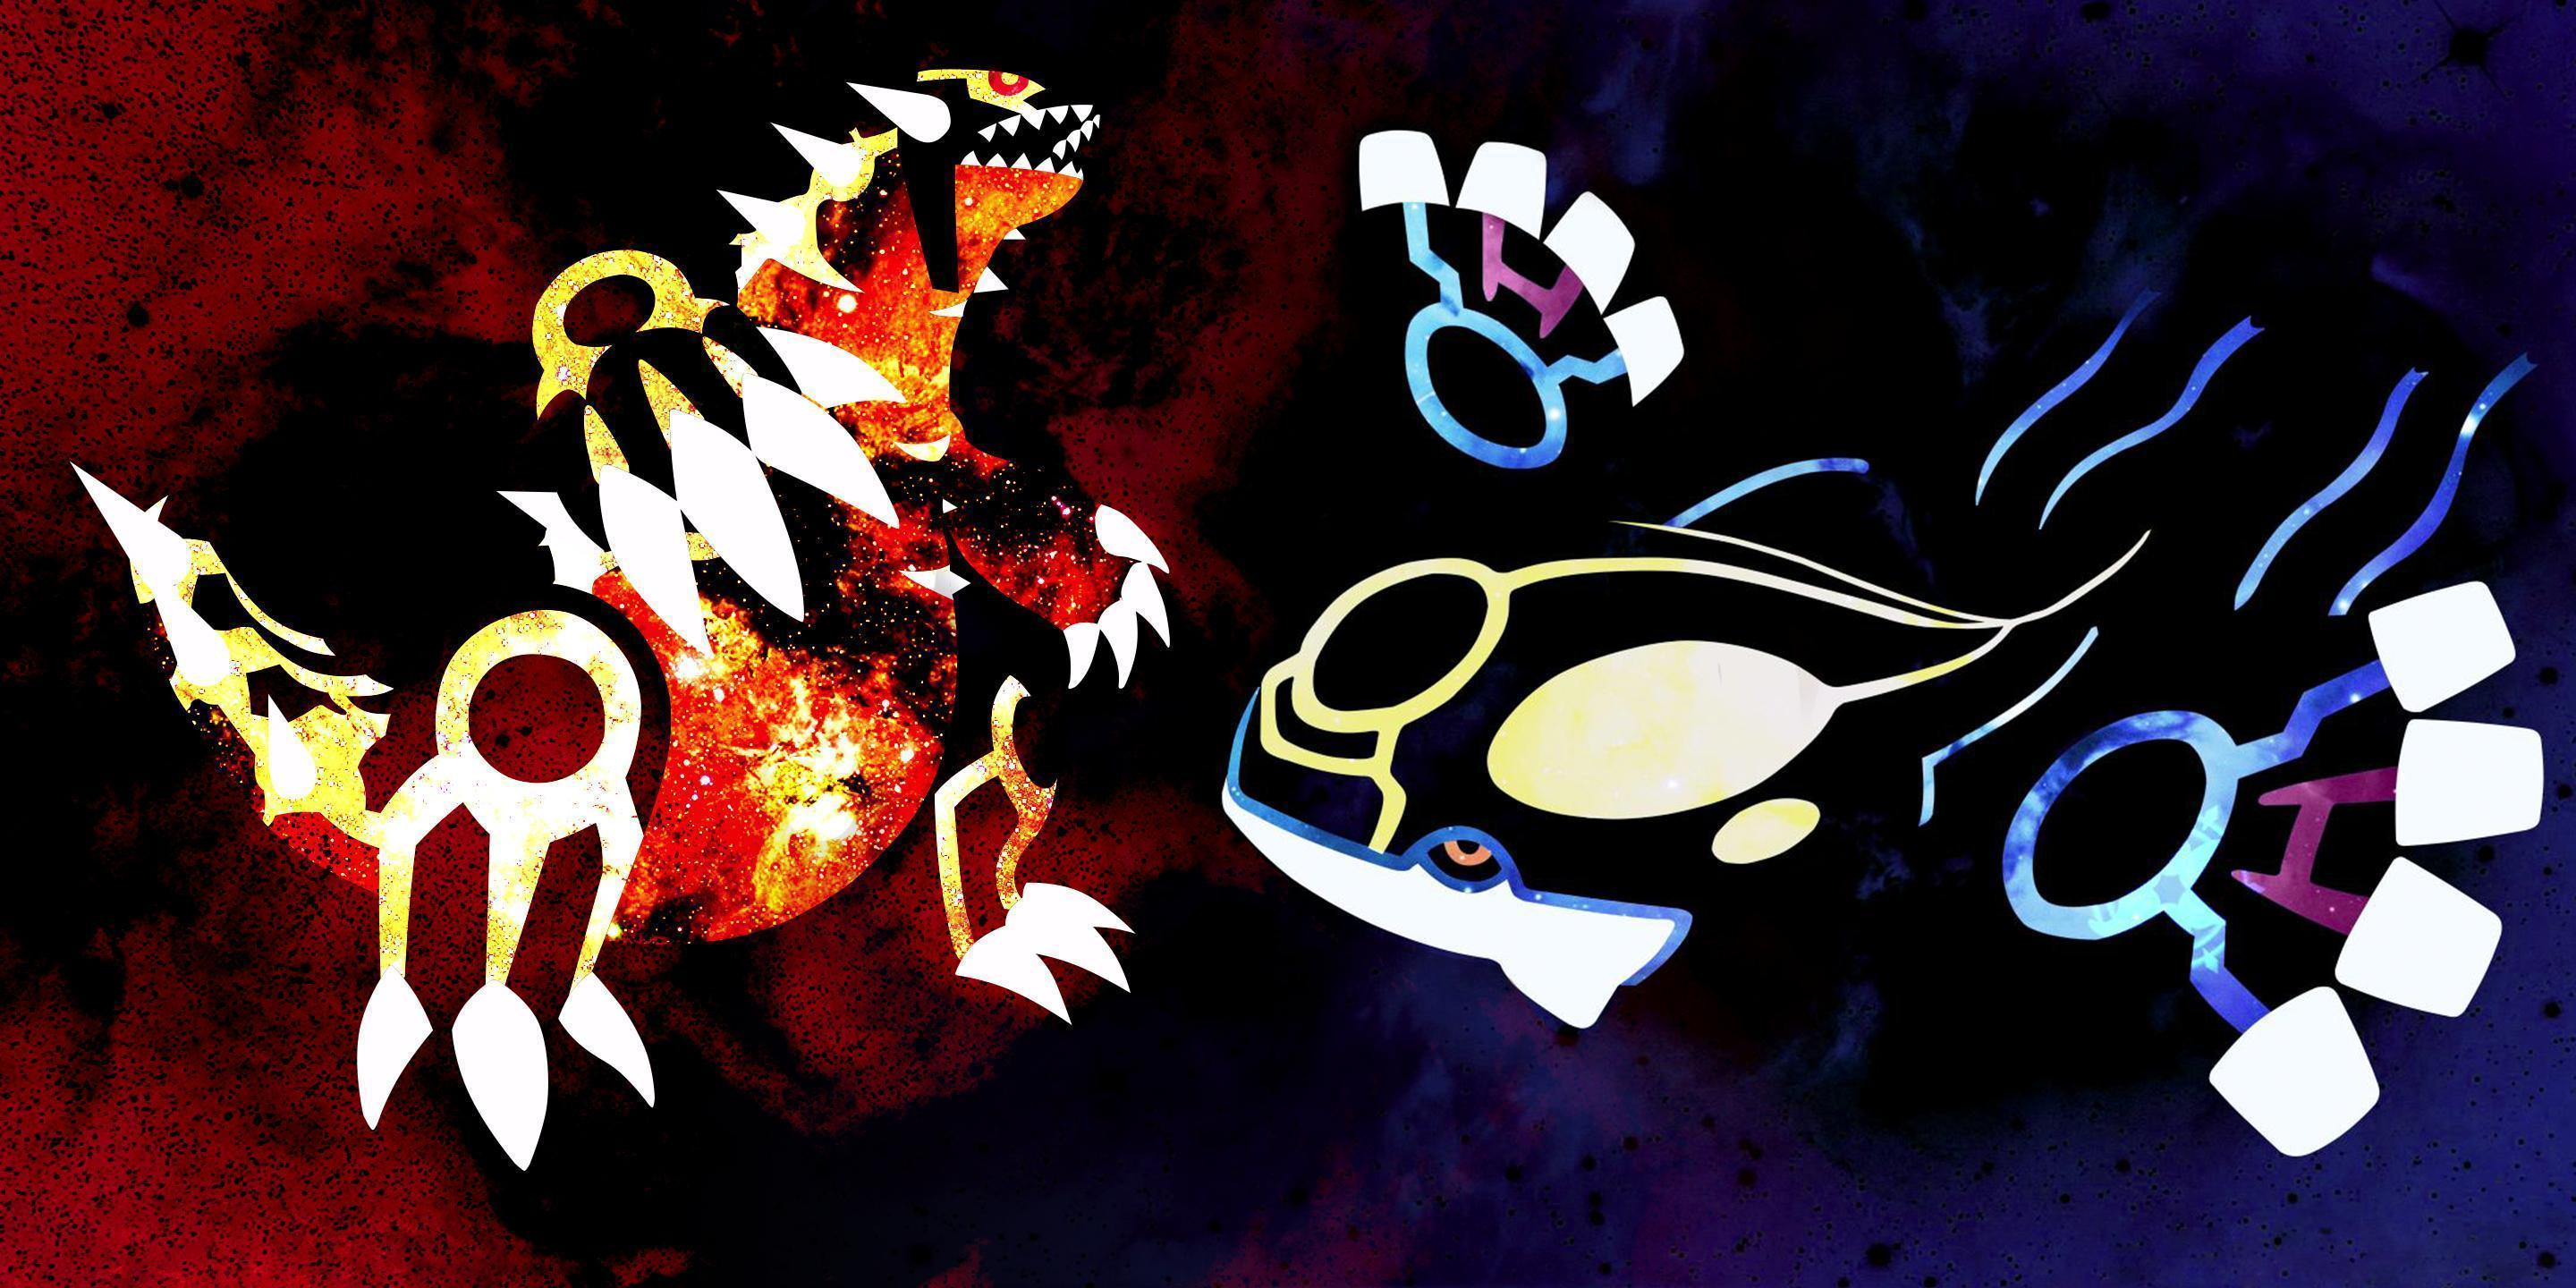 28 Kyogre (Pokémon) HD Wallpapers | Background Images - Wallpaper Abyss